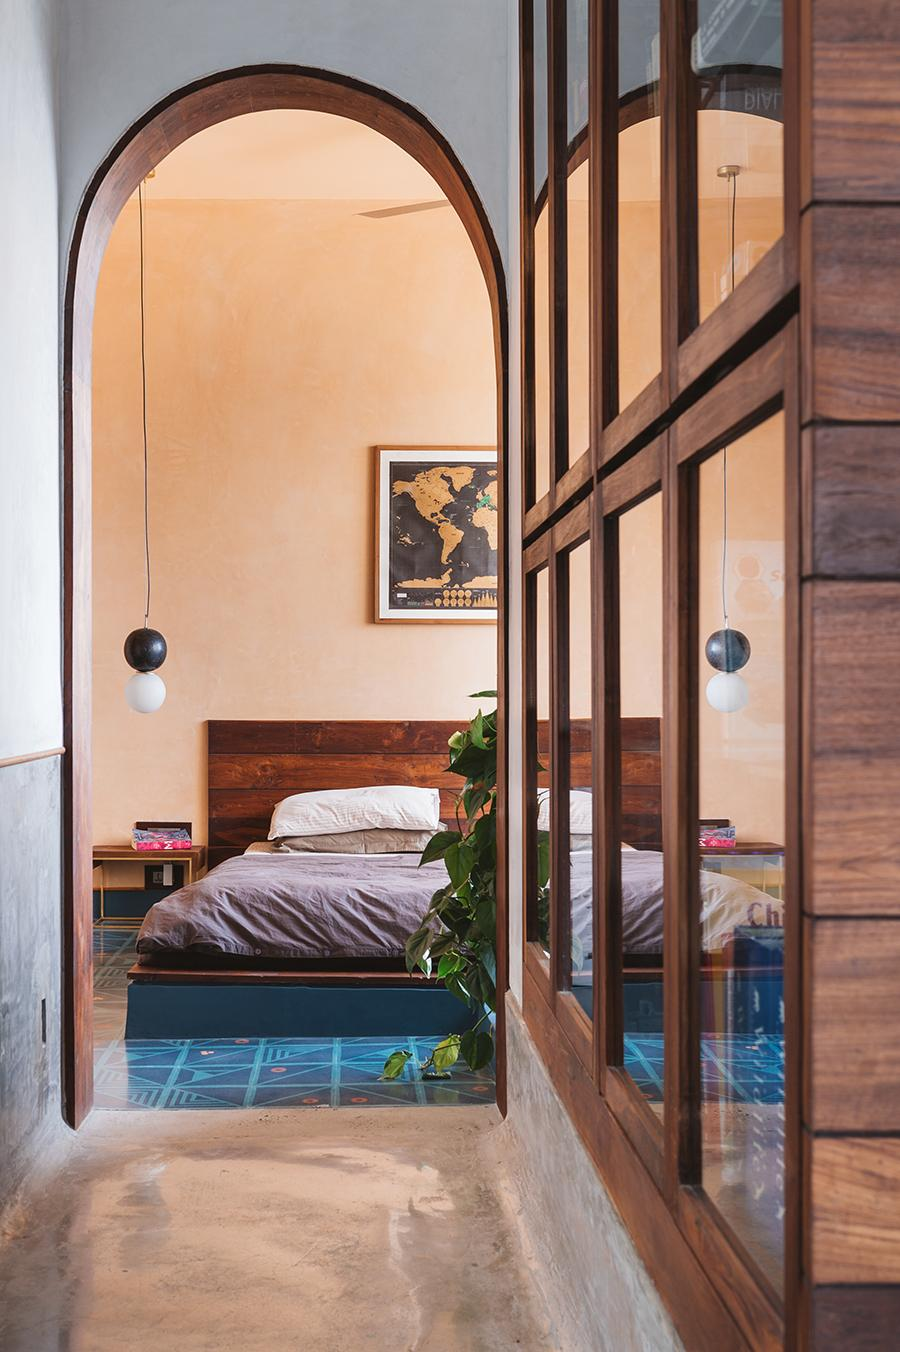 A corridor connects the living space to the doorless sleeping quarters. (Photo: The Fishy Project)